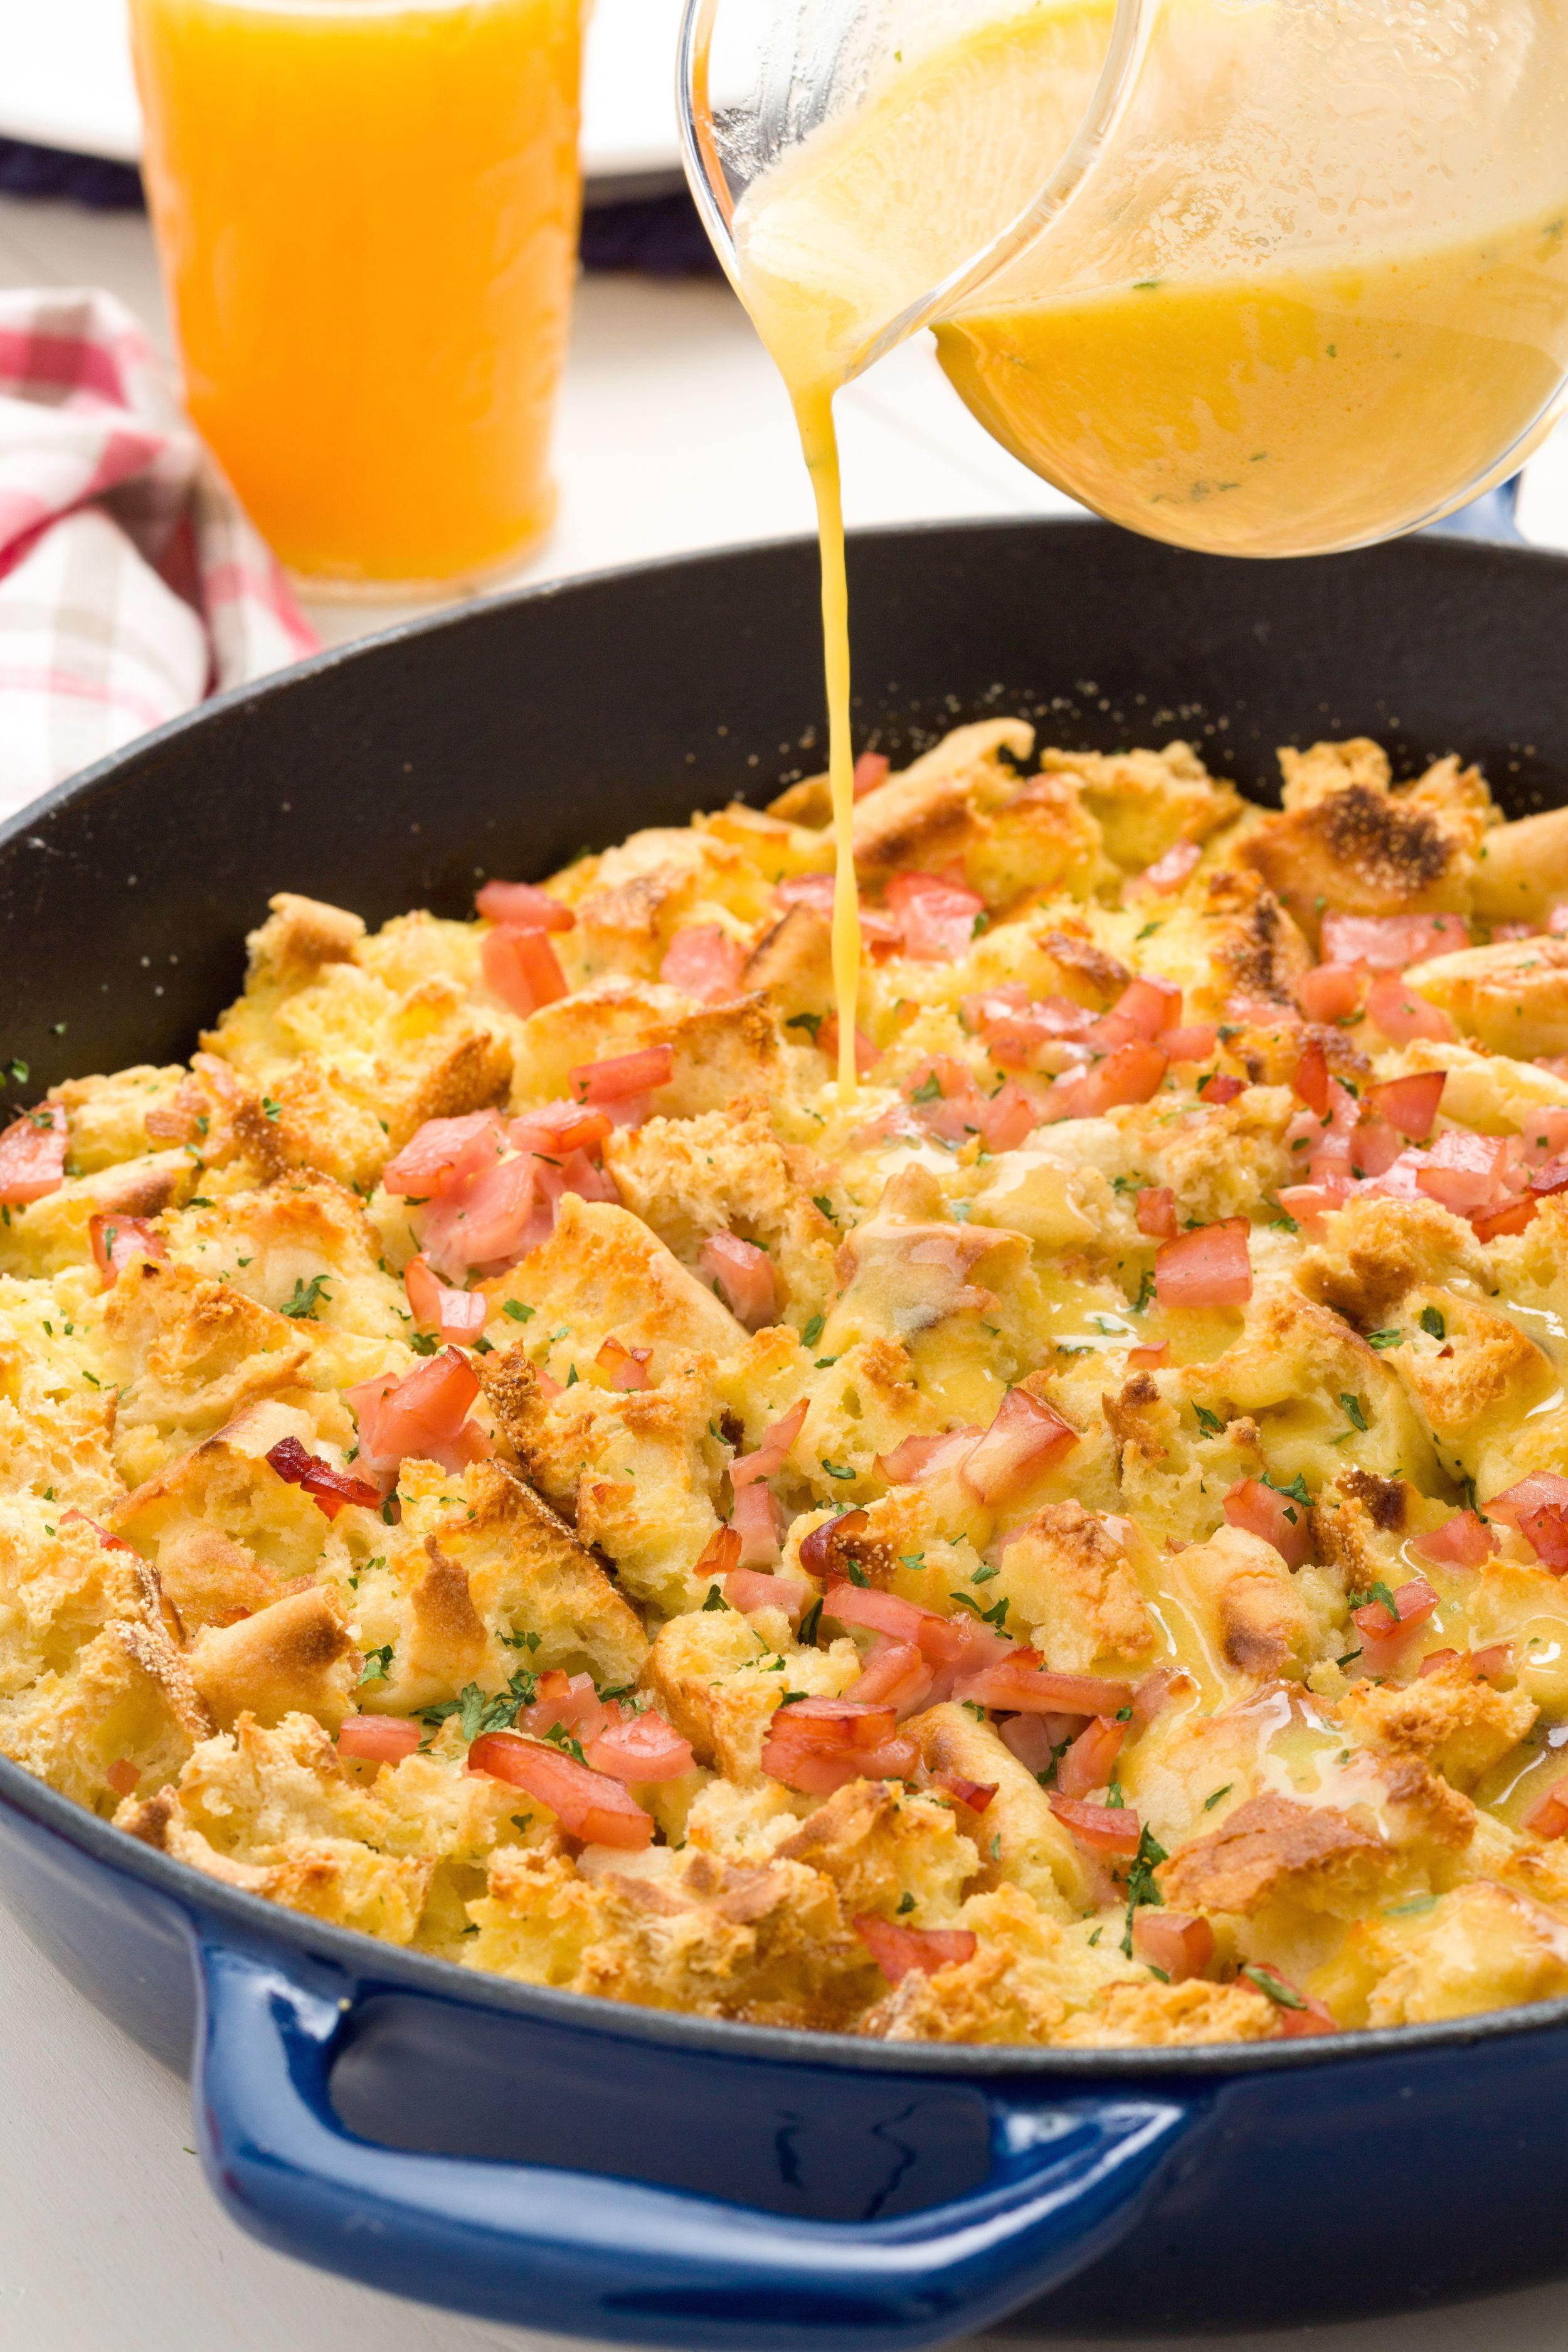 100 easy egg recipes best ways to cook eggs for dinner delish forumfinder Images